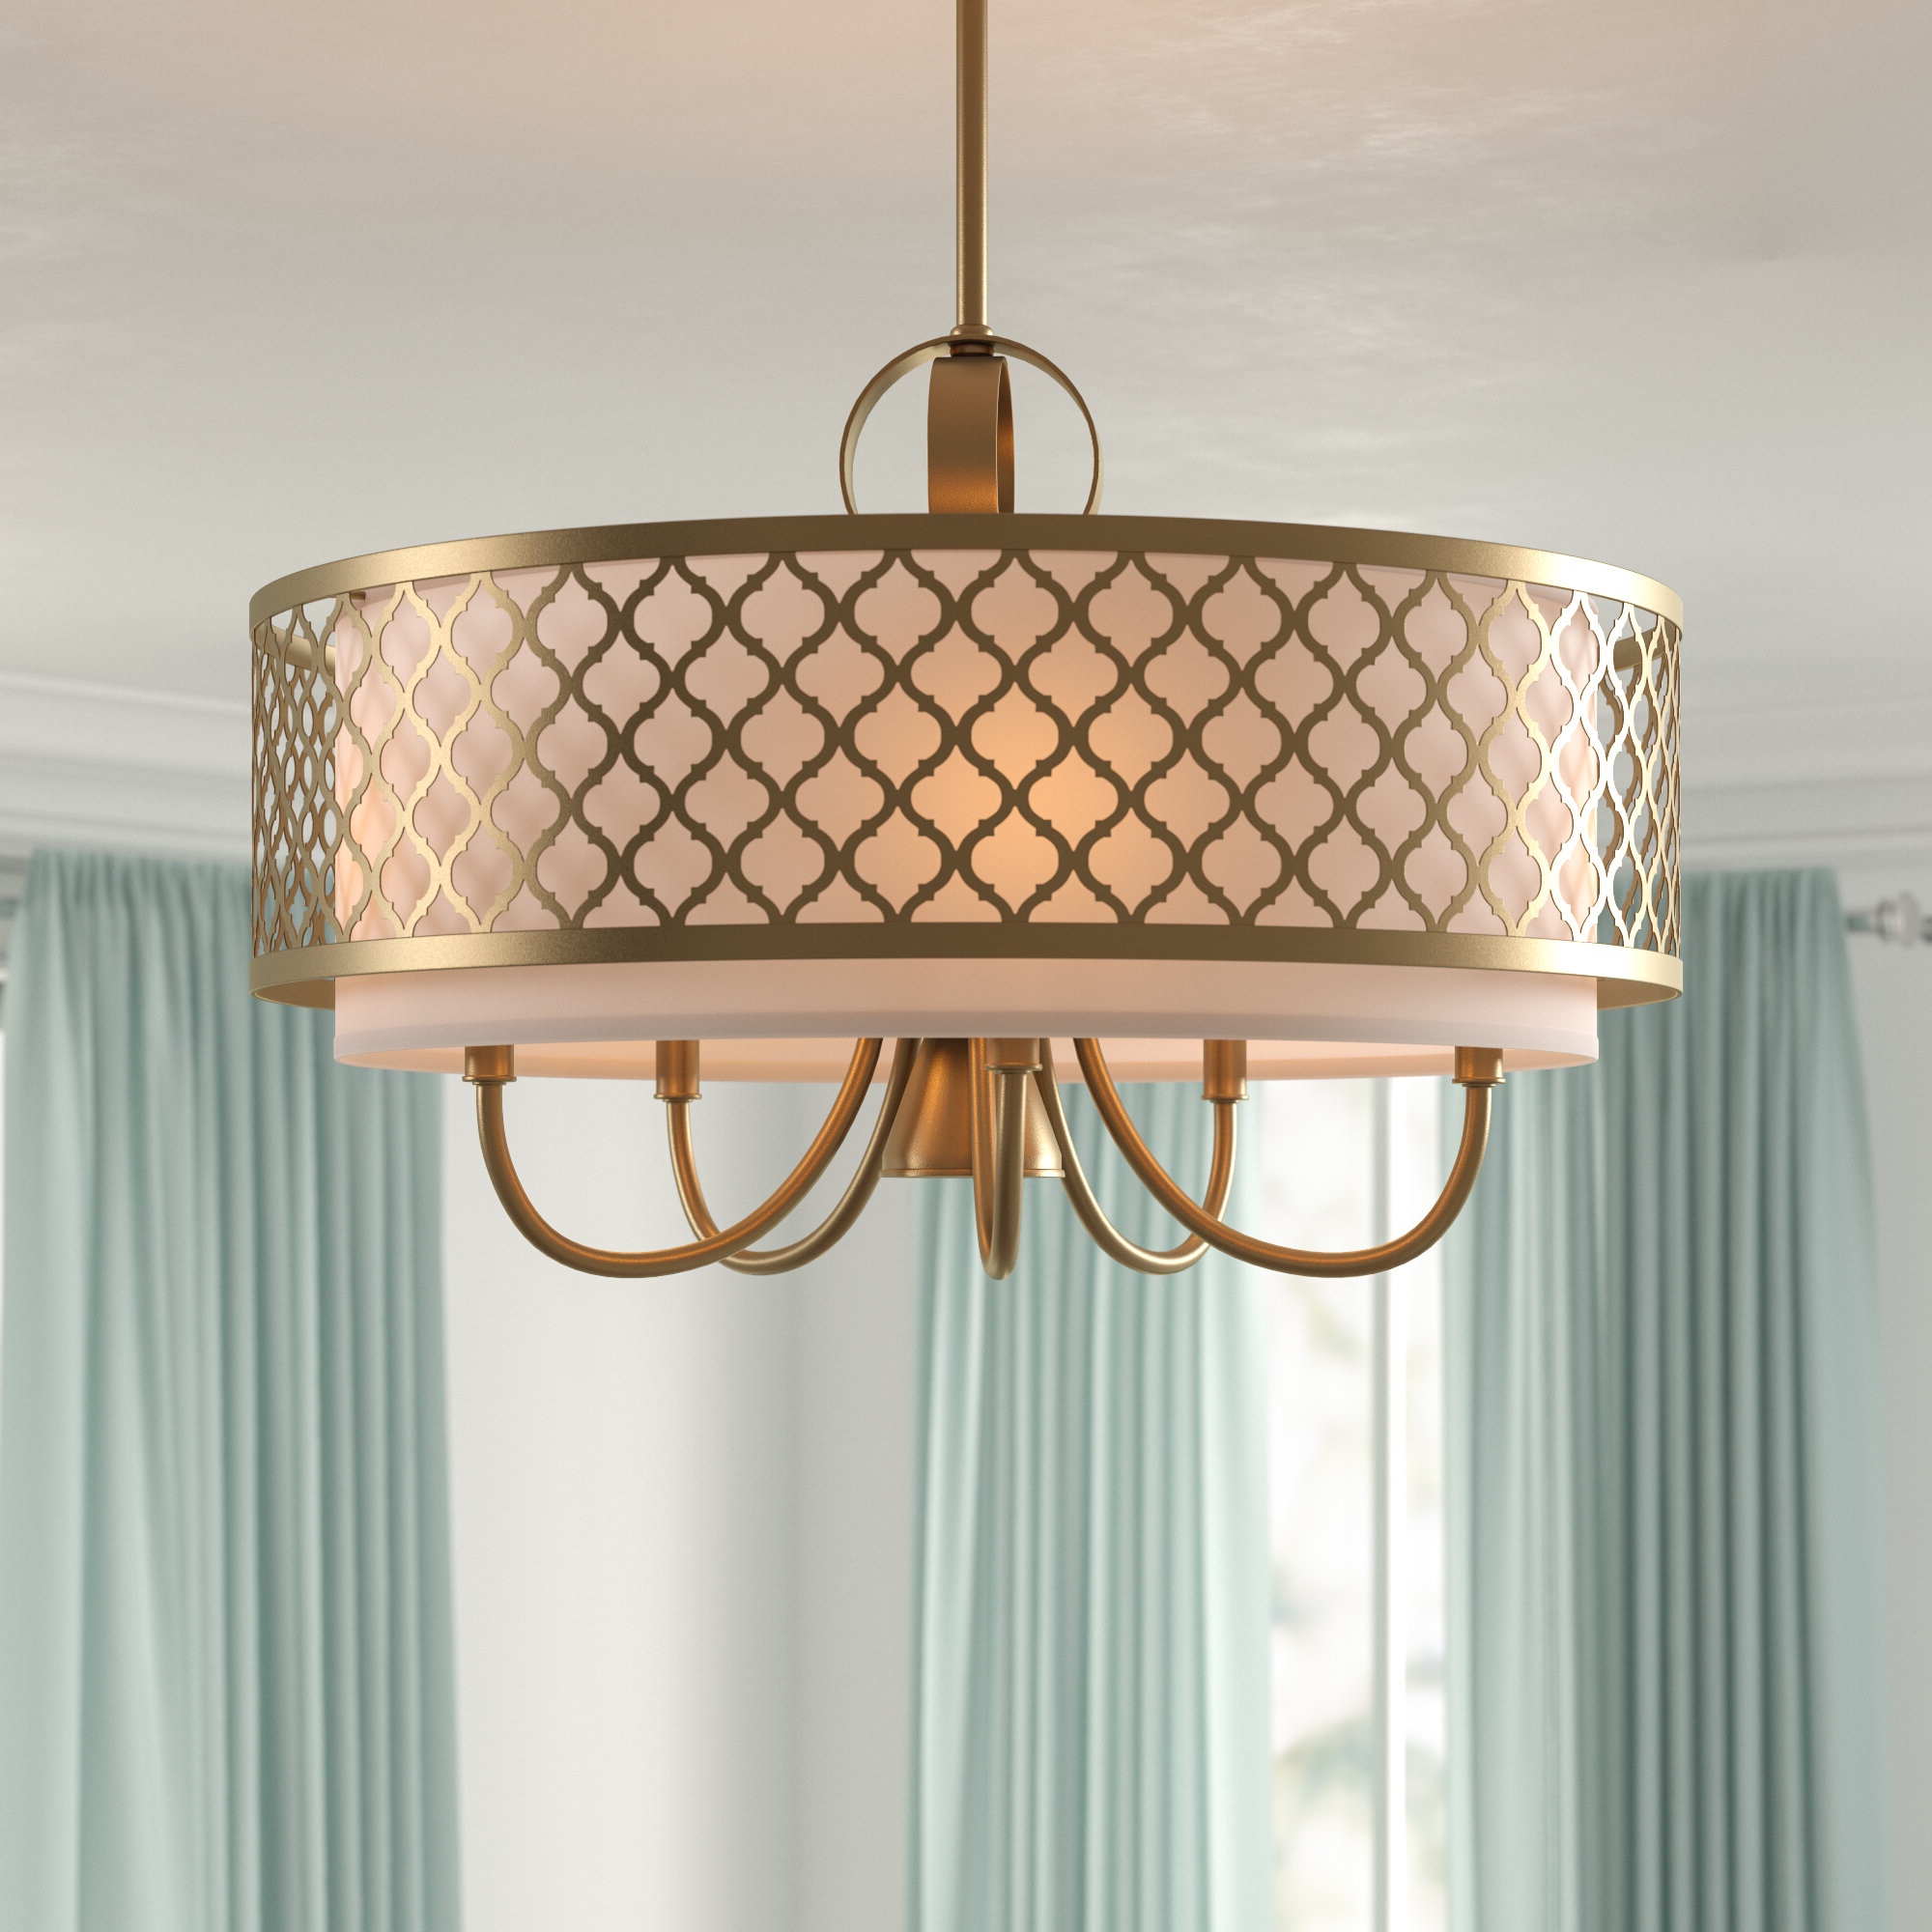 Tymvou 6 Light Drum Chandelier In Well Liked Wadlington 6 Light Single Cylinder Pendants (View 4 of 20)